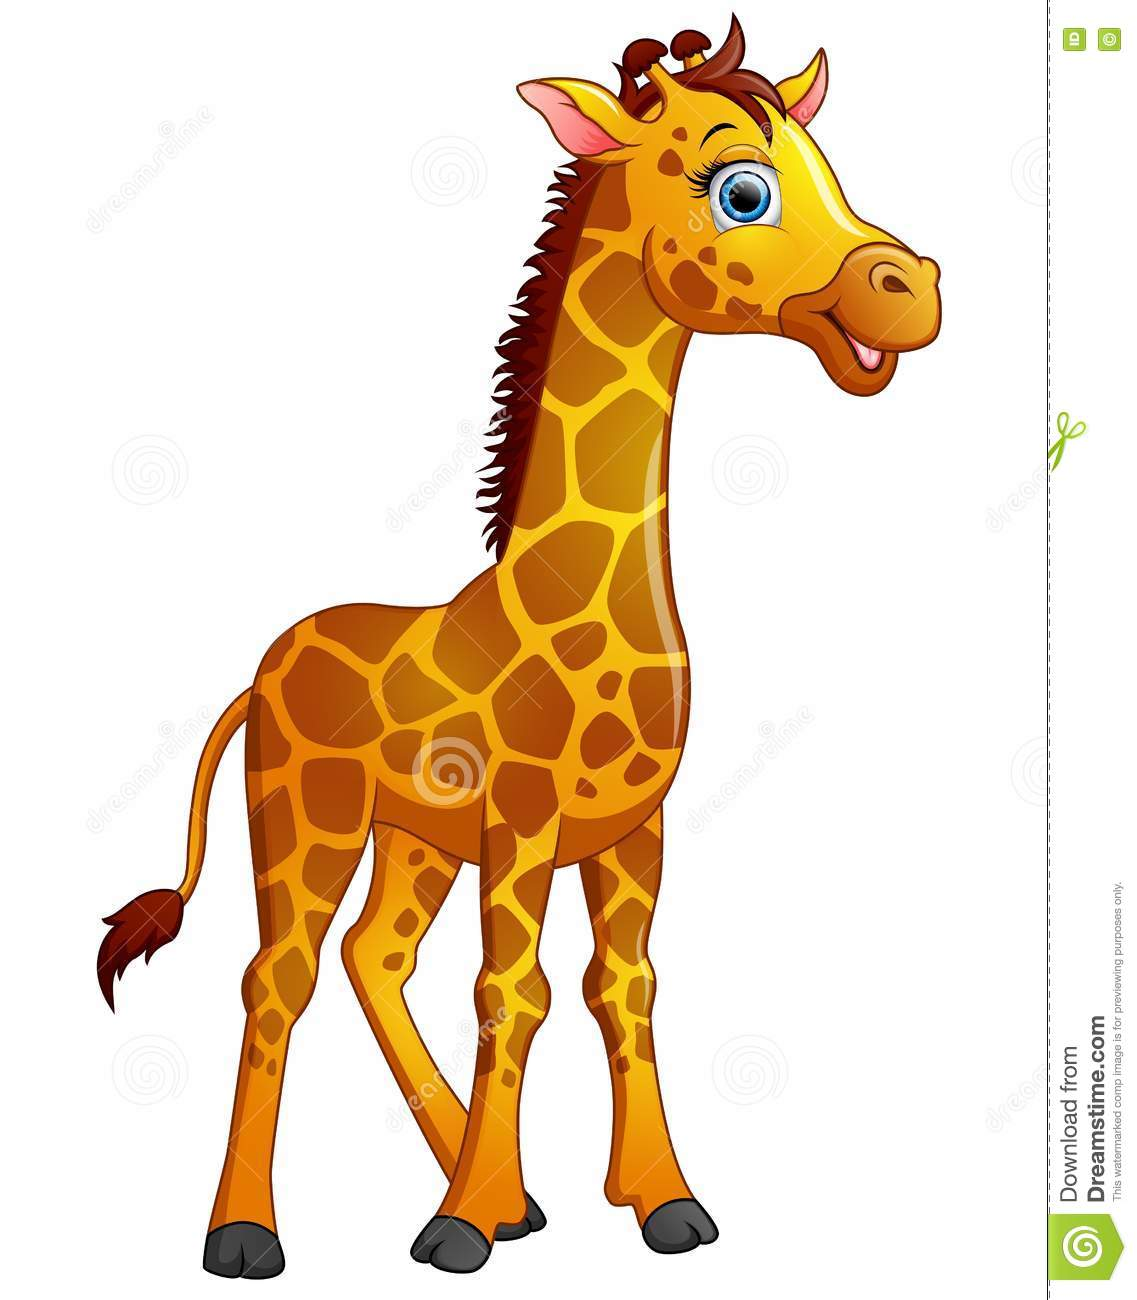 happy giraffe cartoon isolated on white background stock clipart giraffe body clipart giraffe print letters